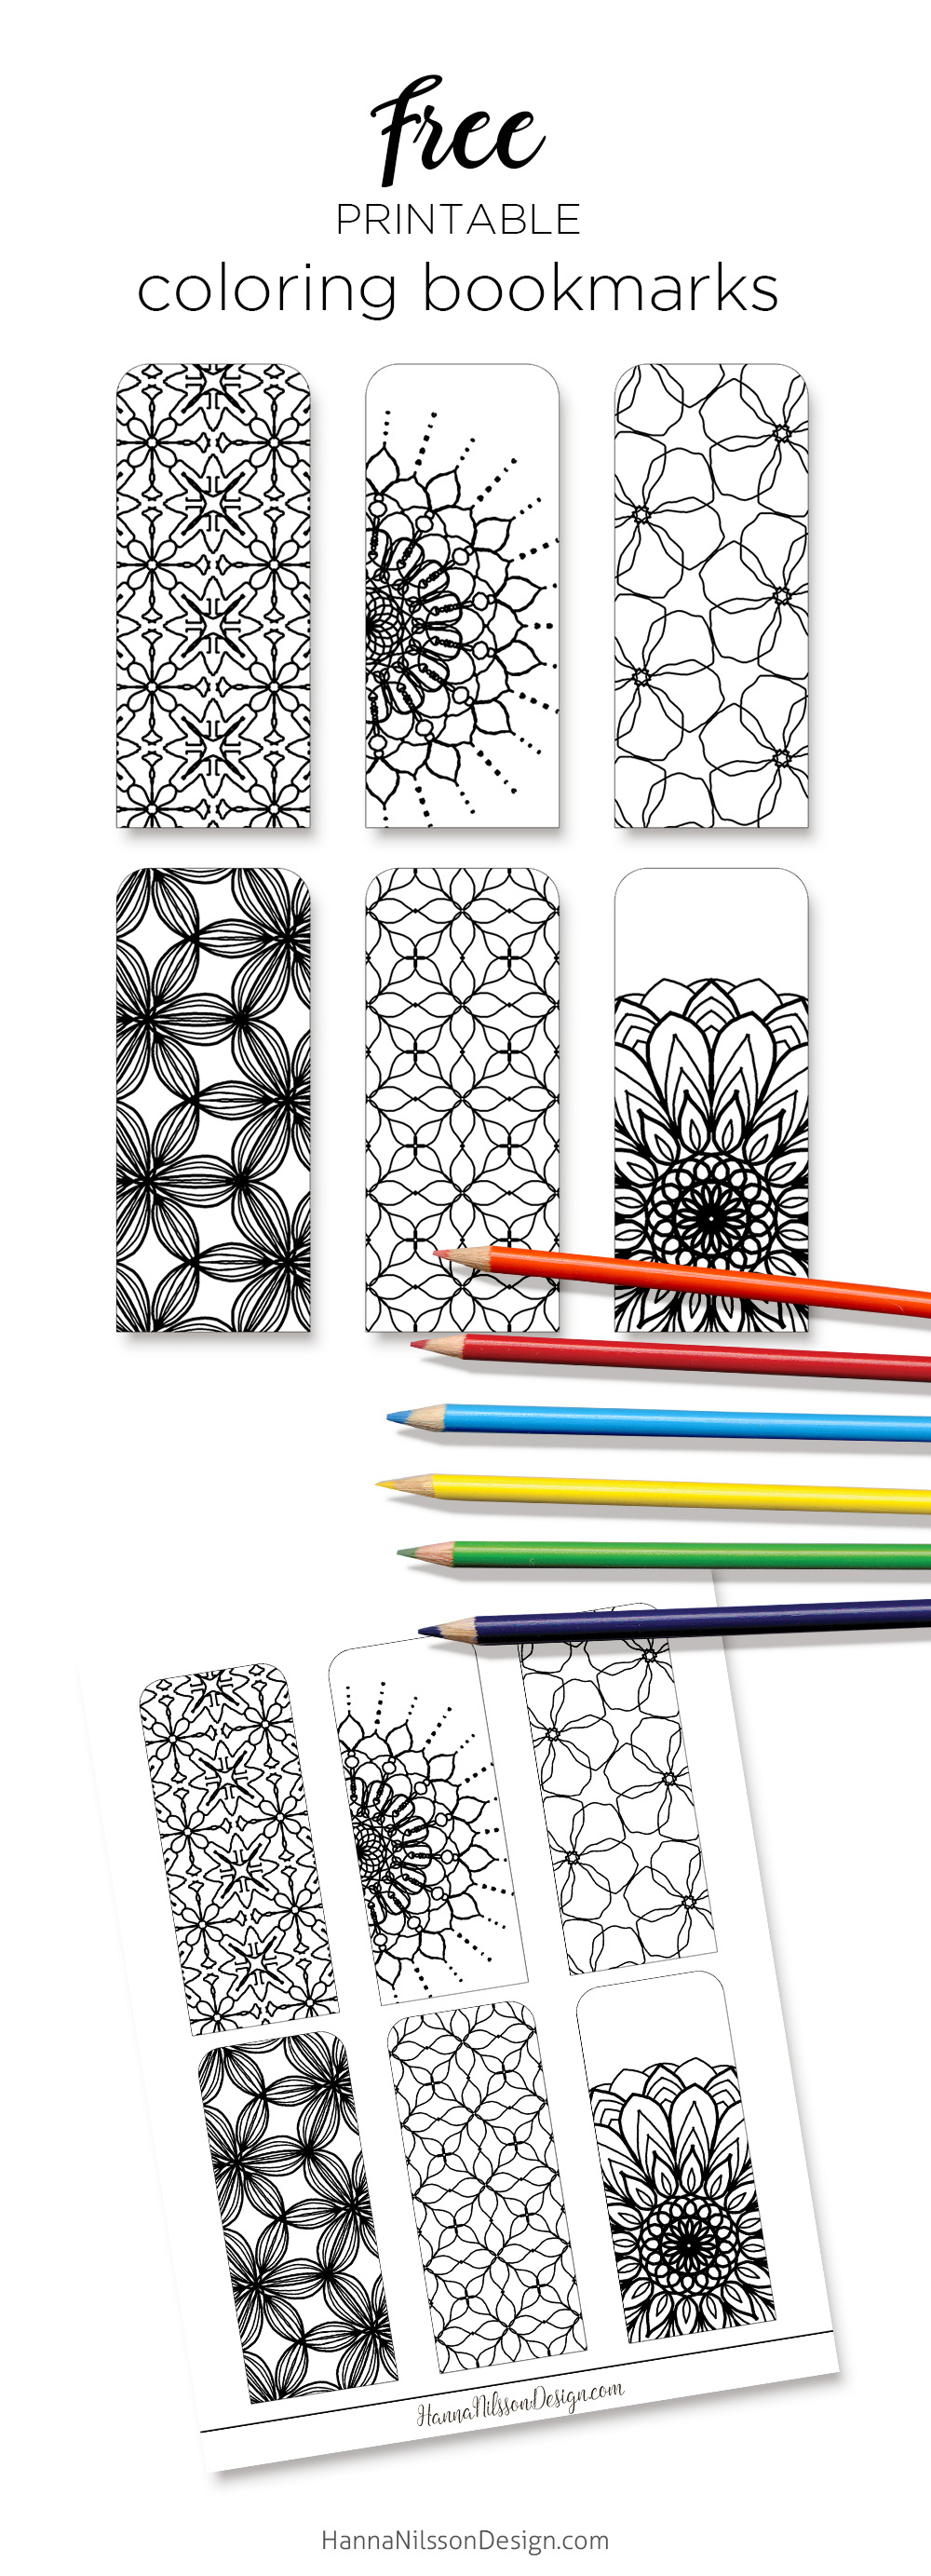 graphic regarding Printable Bookmarks to Color known as Coloring bookmarks print, colour and examine Hanna Nilsson